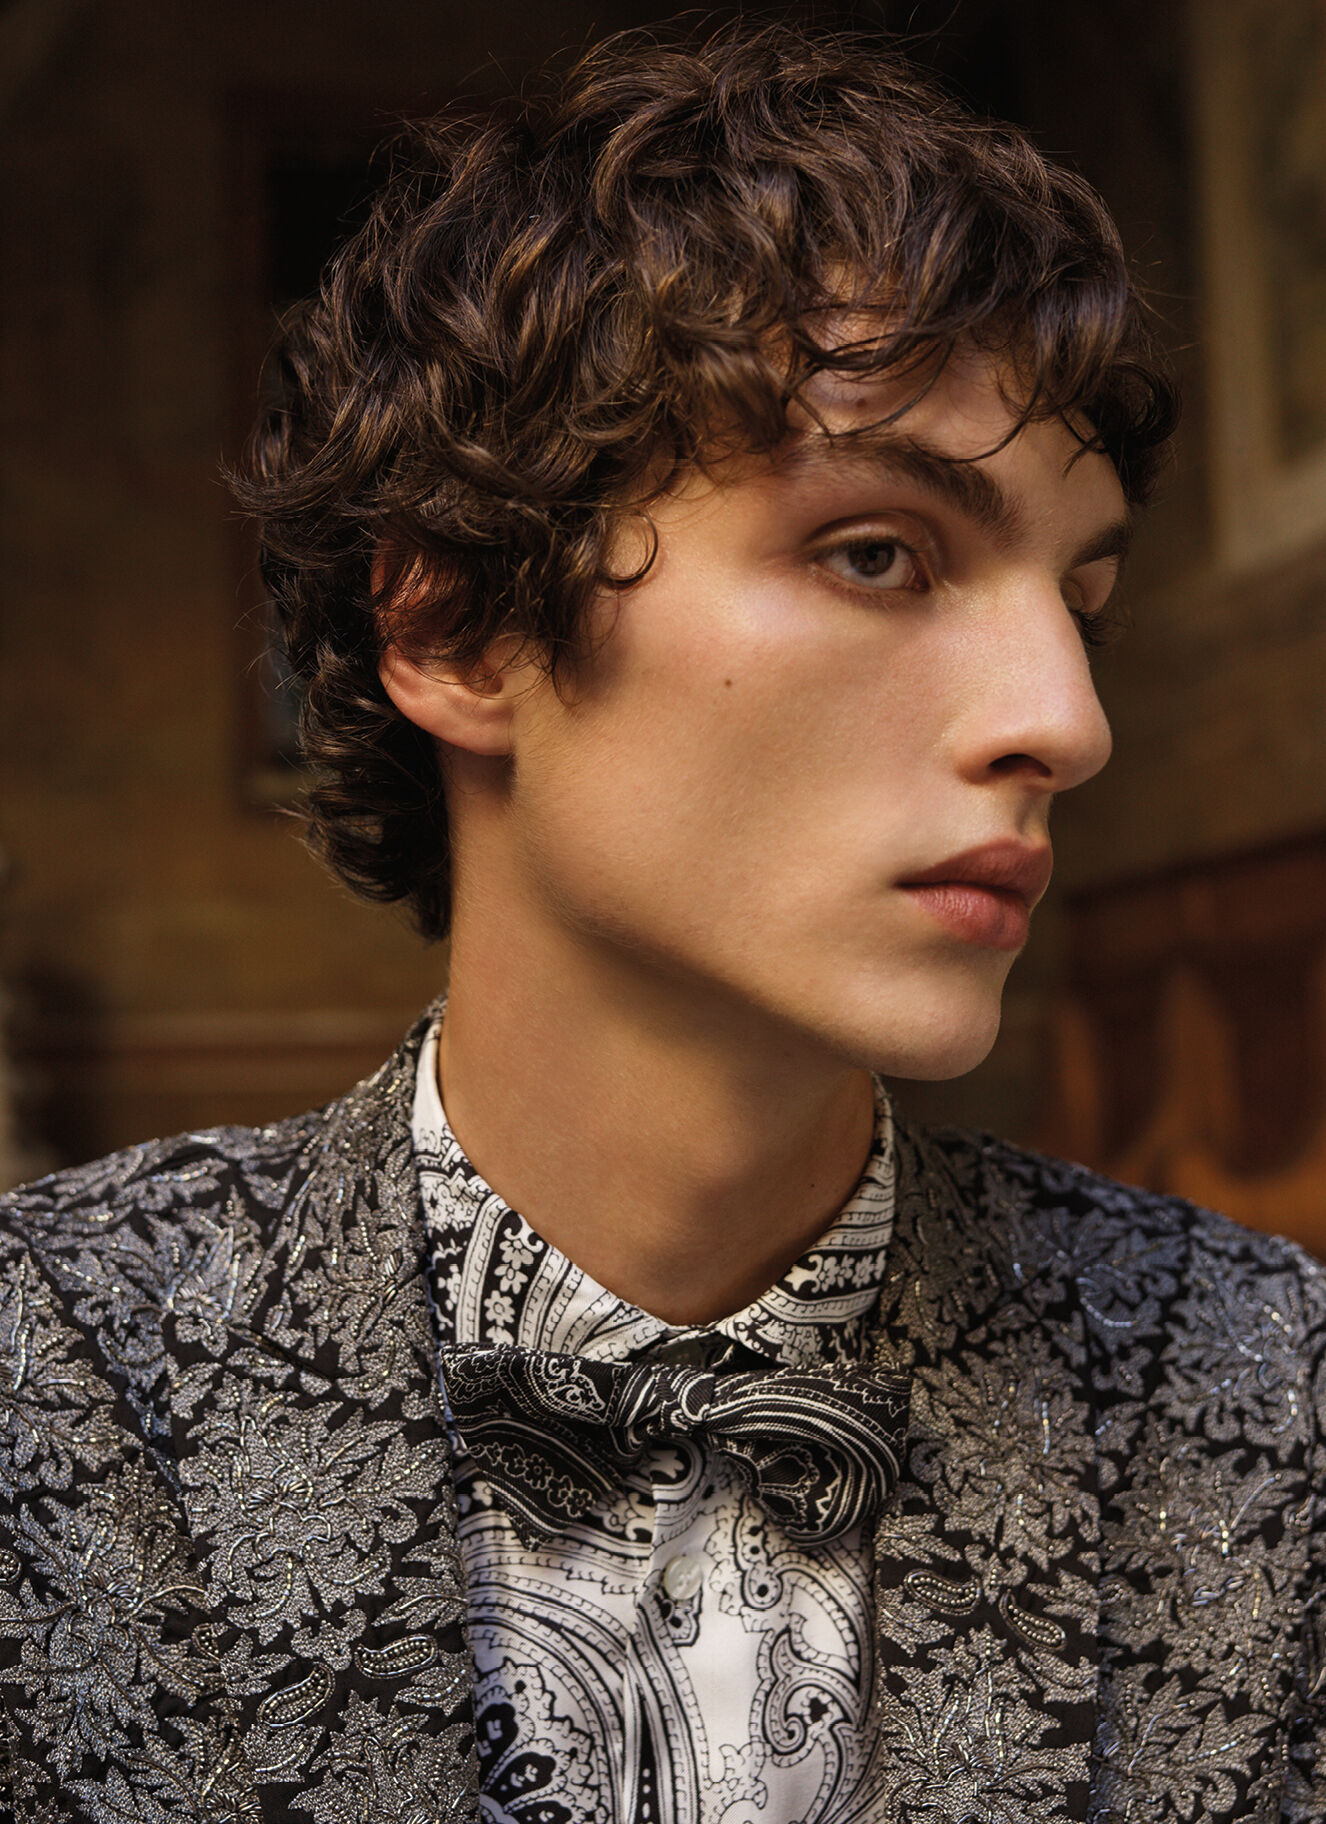 ETRO_SS21_Unisex_Catalogue_41